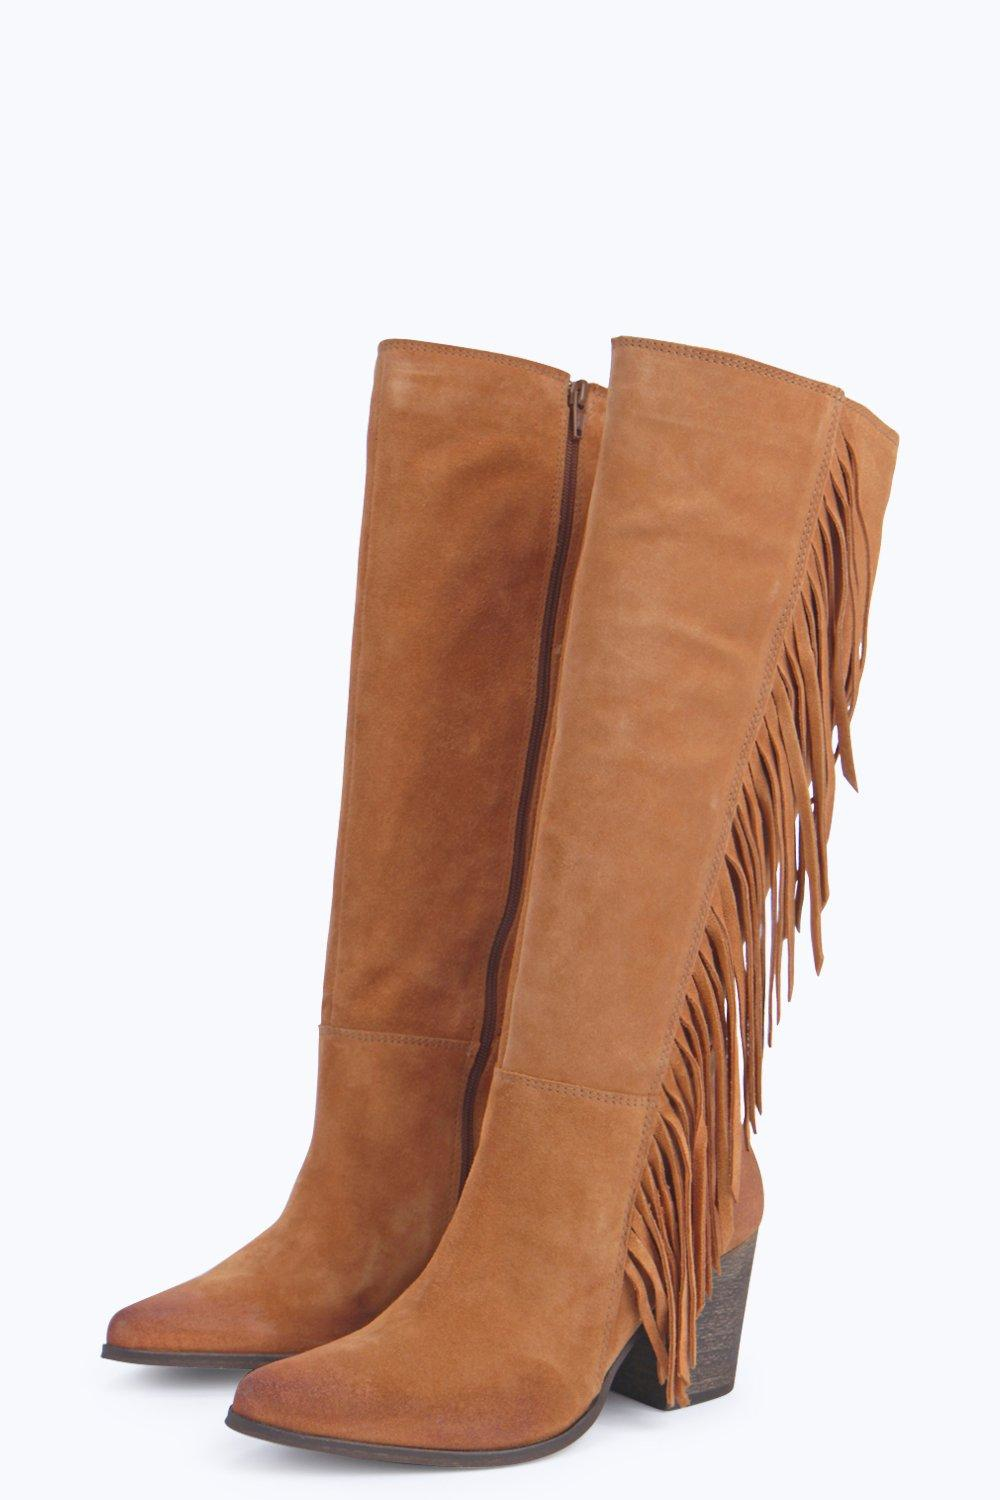 Boohoo Boutique Isabel Leather Fringe Side Knee Boot in Tan (Brown)